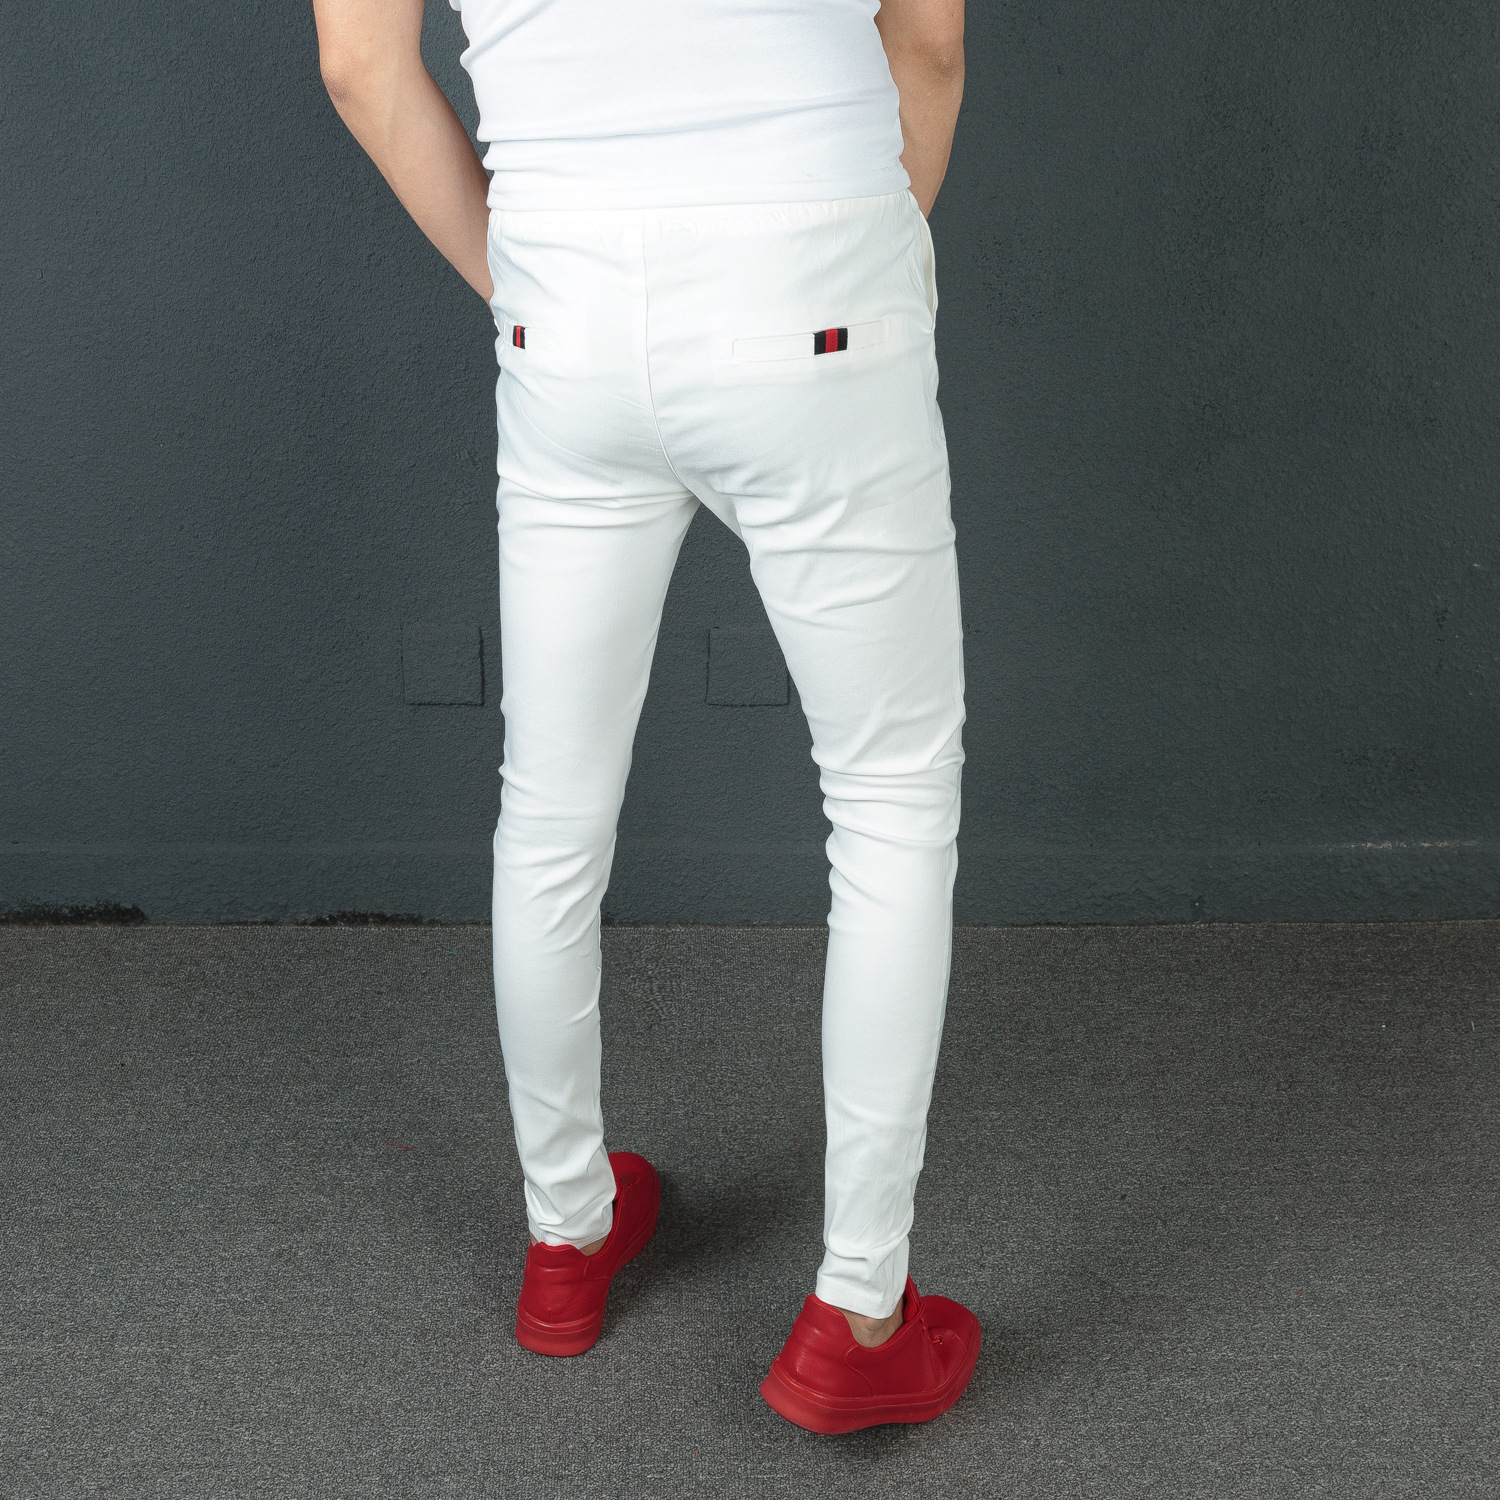 Deft Reds Celebrity Style Pants Lively Social Fella Korean-style Slimming Skinny Pants Youth Casual Pants Men's Fashion